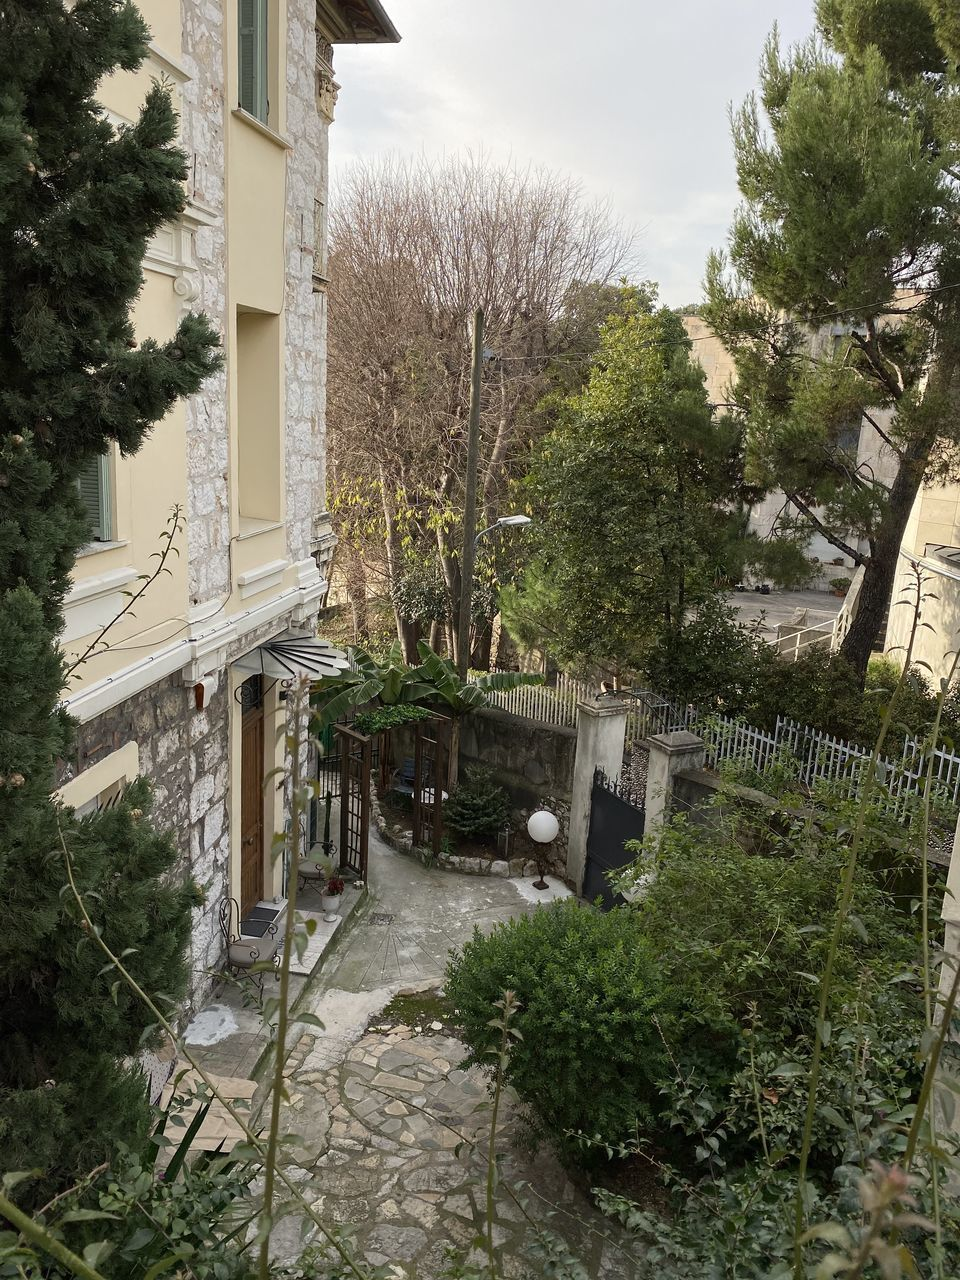 plant, tree, architecture, built structure, building exterior, nature, building, no people, day, growth, outdoors, footpath, sky, house, garden, residential district, high angle view, water, city, front or back yard, courtyard